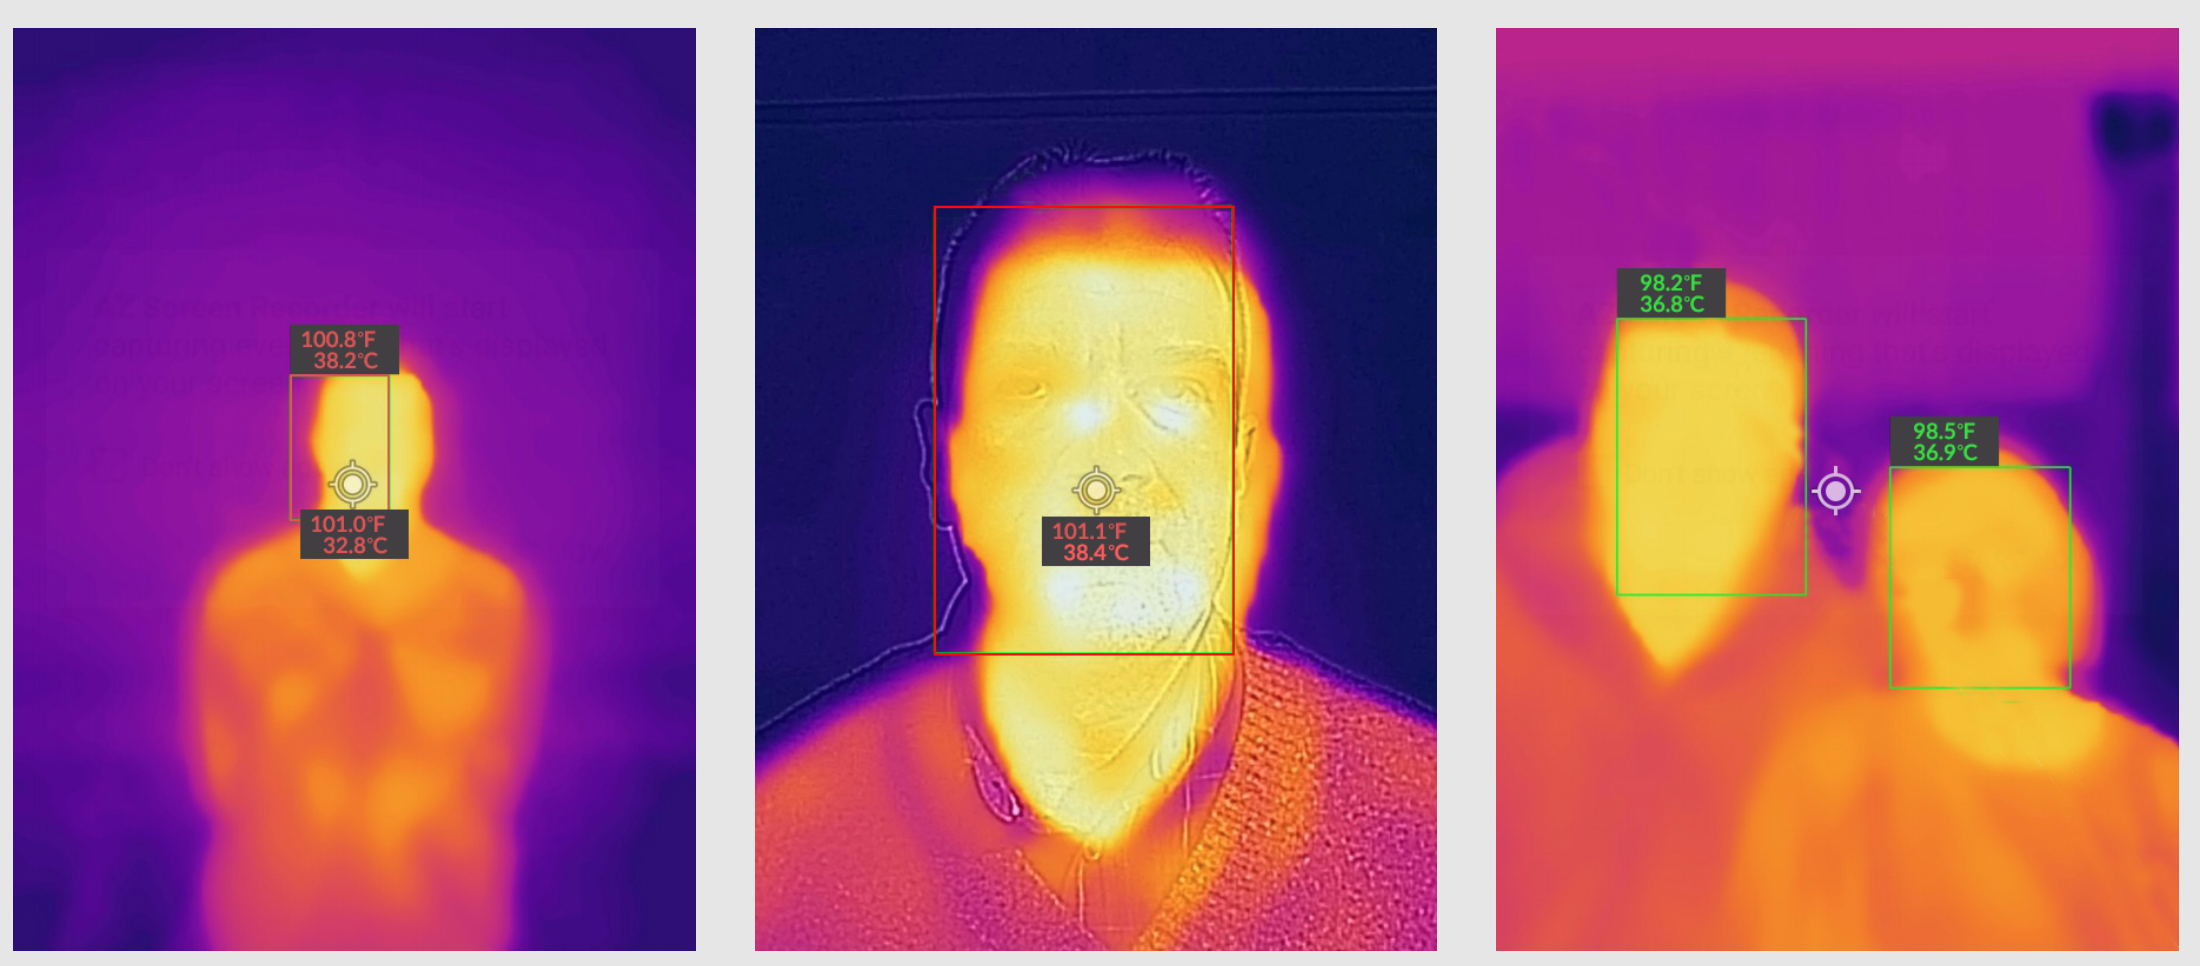 Thermography Detection